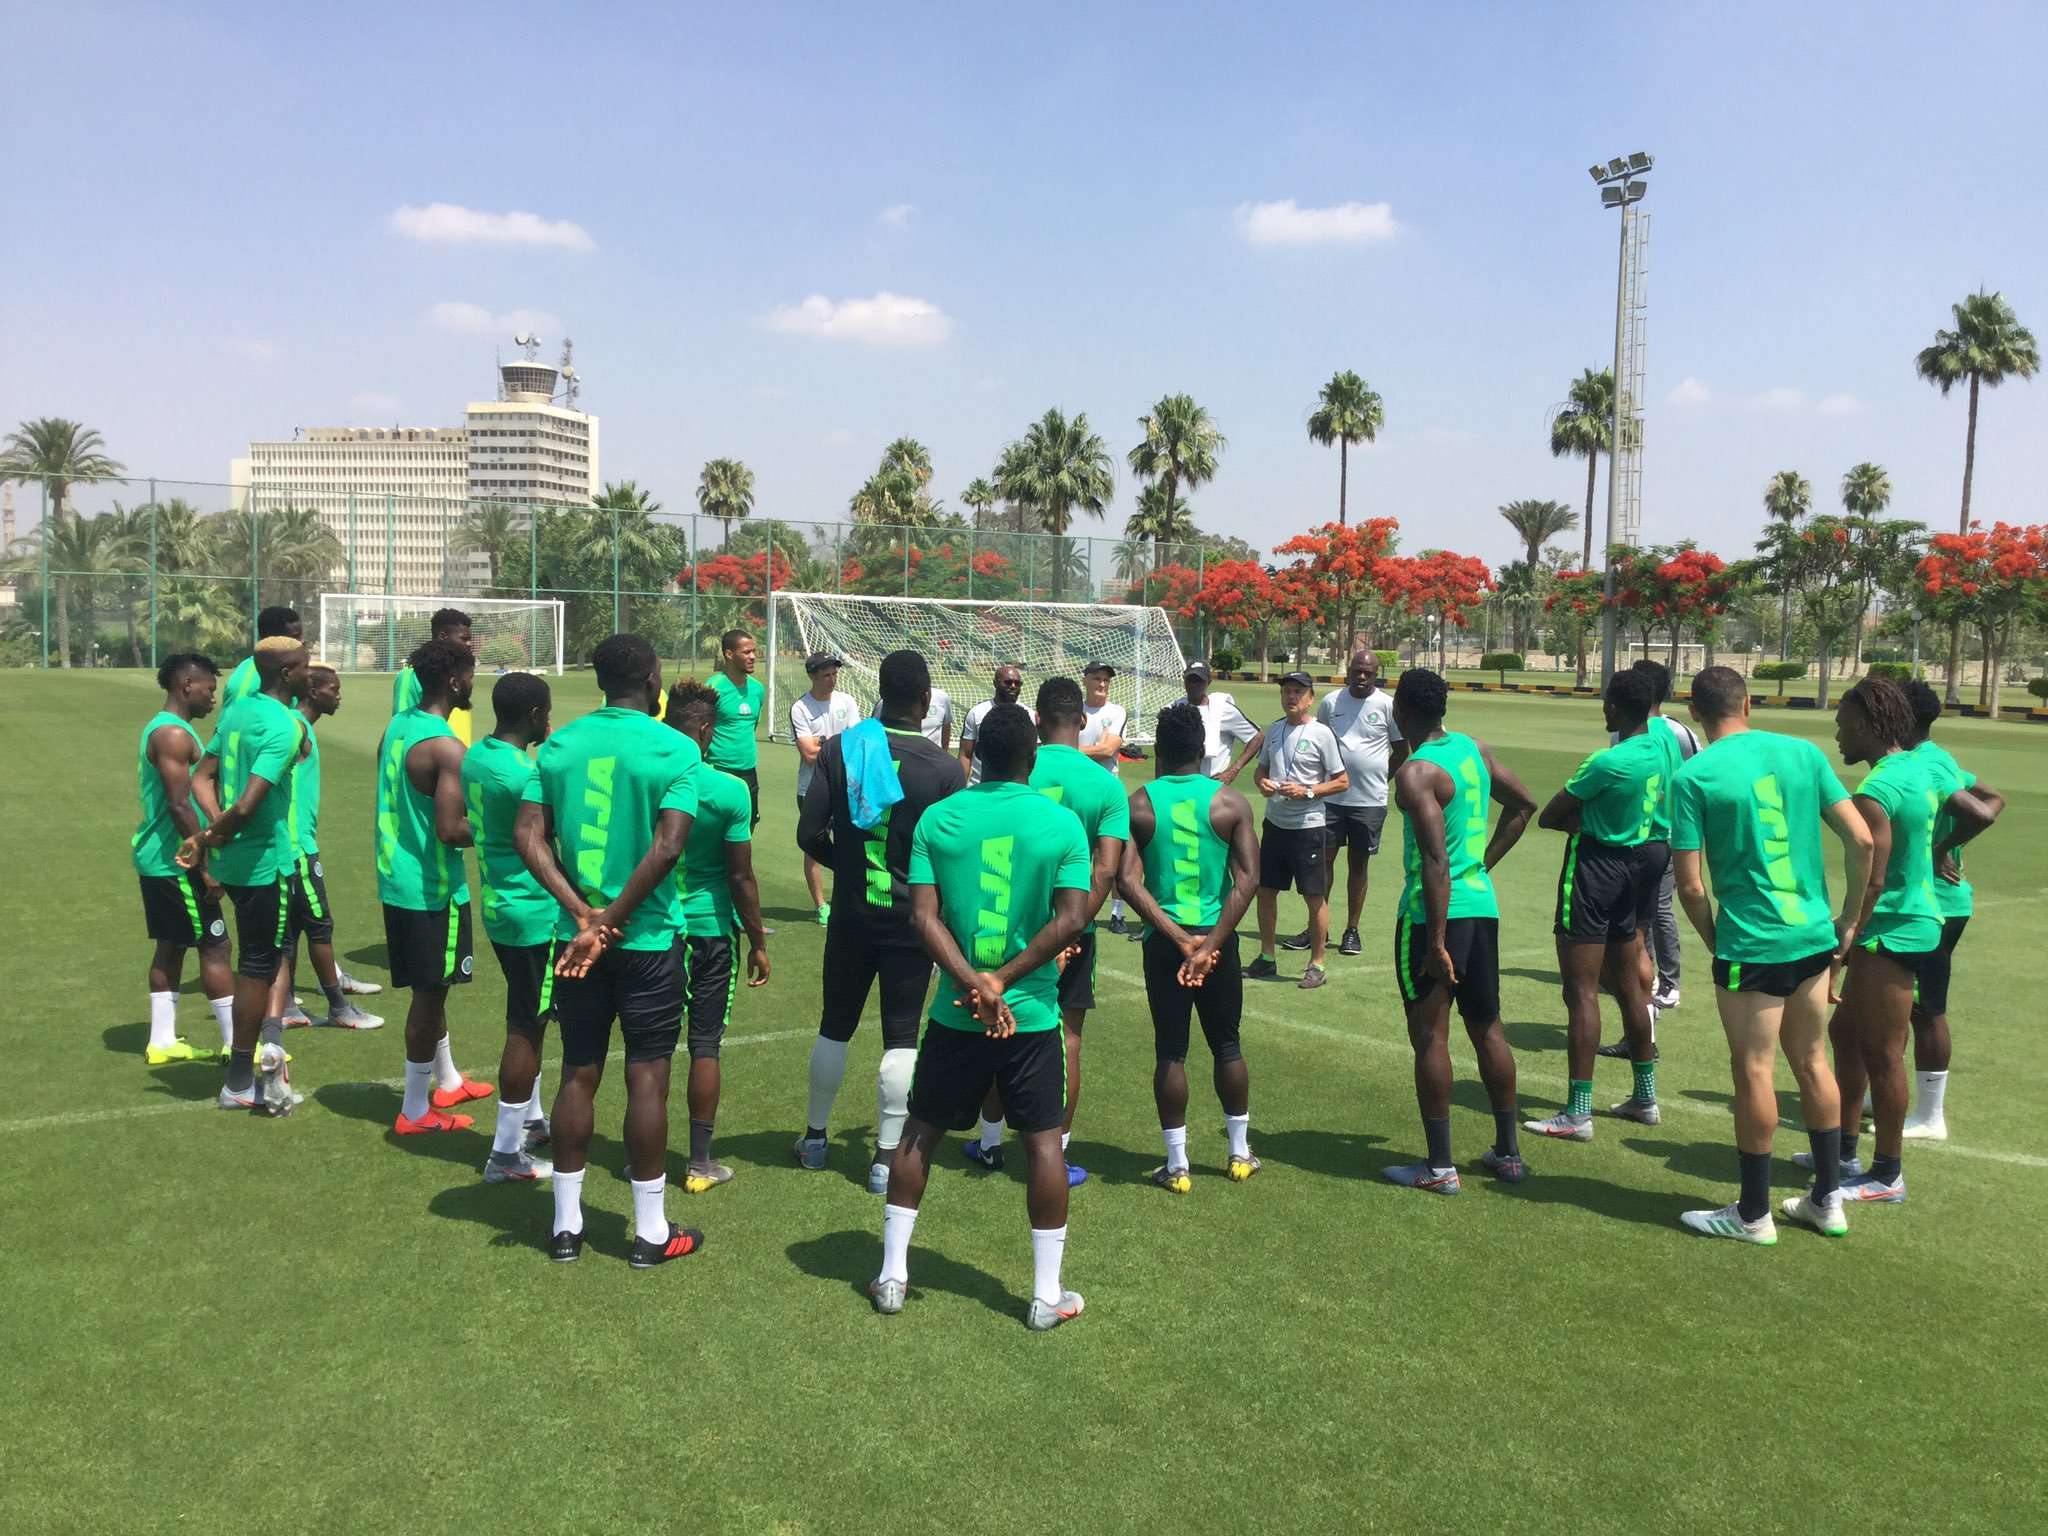 https://www.busybuddiesng.com/wp-content/uploads/2019/06/Super-Eagles-in-training-in-Alexandria-2019-AFCON.jpg